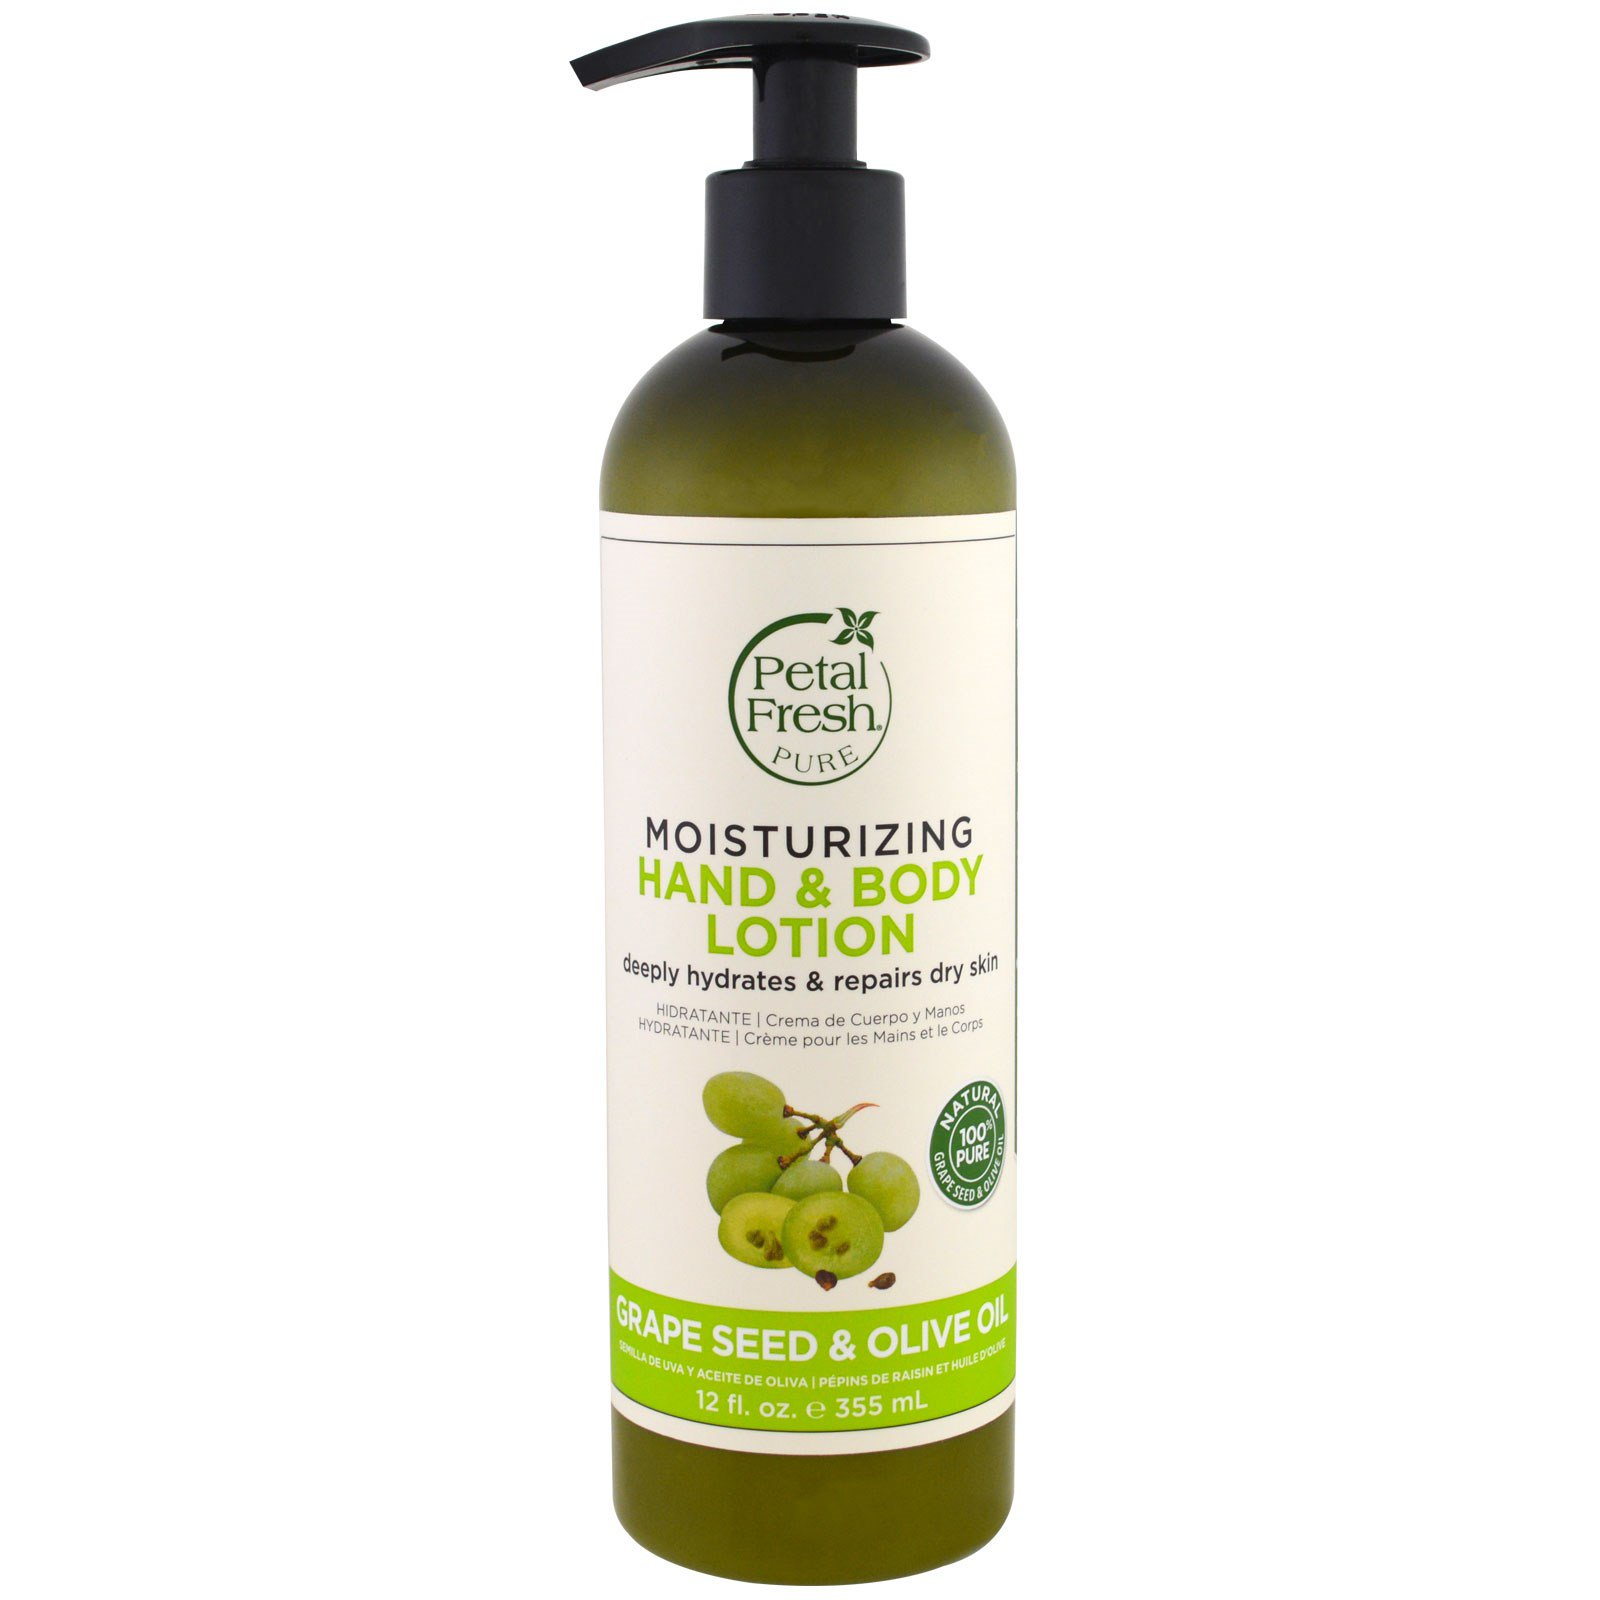 Petal Fresh, Pure, Moisturizing Hand & Body Lotion, Grape Seed  & Olive Oil, 12 fl oz (355 ml)